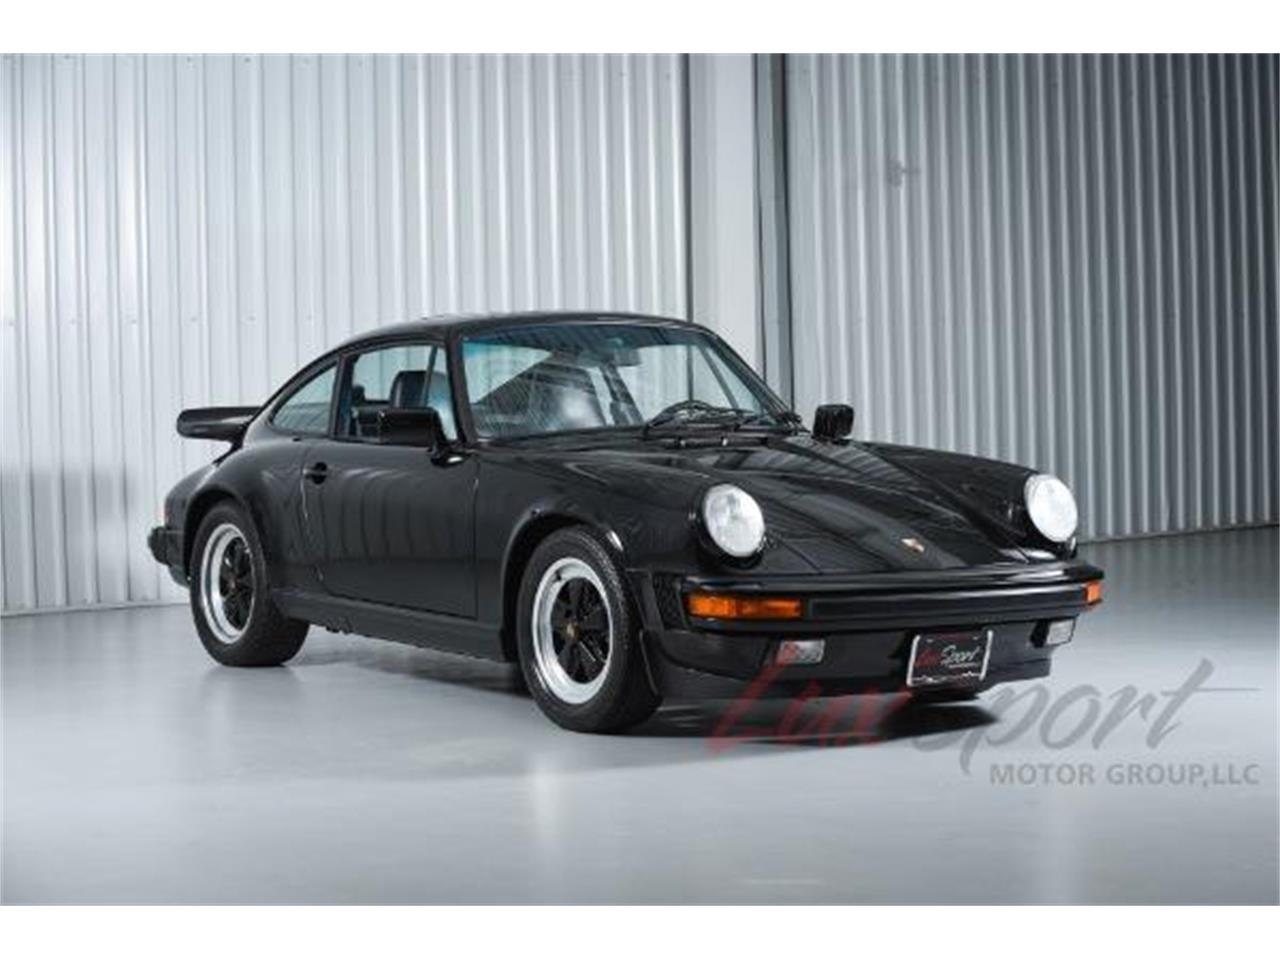 Large Picture of 1987 Porsche 911 Carrera located in New Hyde Park New York Auction Vehicle - JIKQ